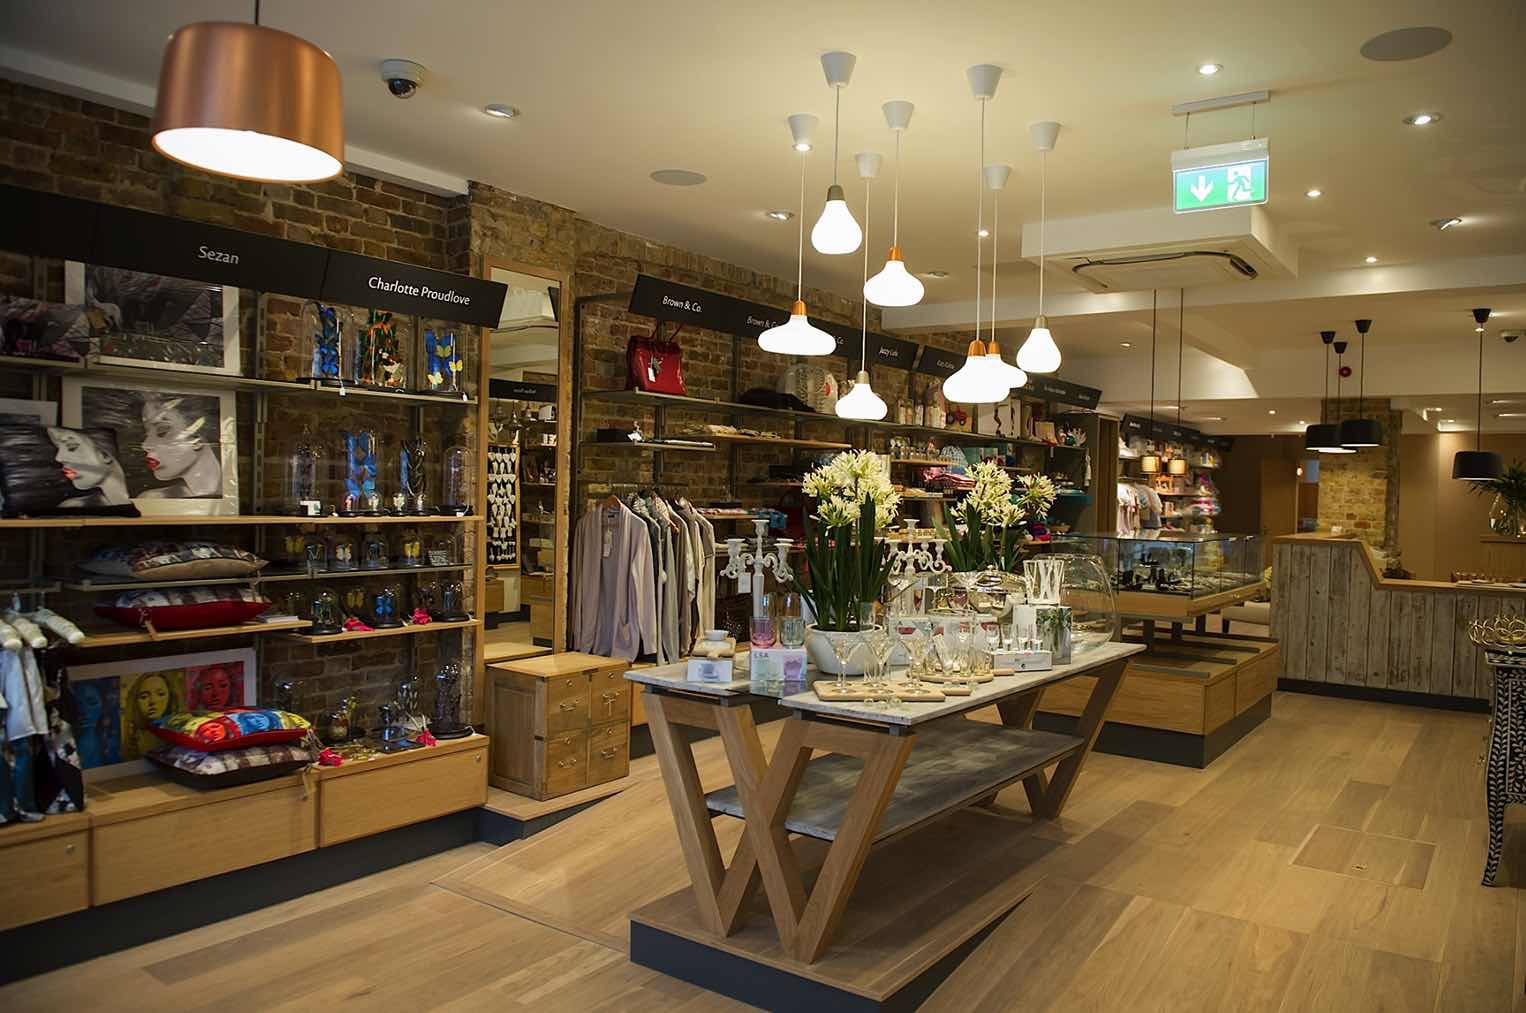 Wrattens-Retail-by-Nugget-Design-Retail-Interior-designers